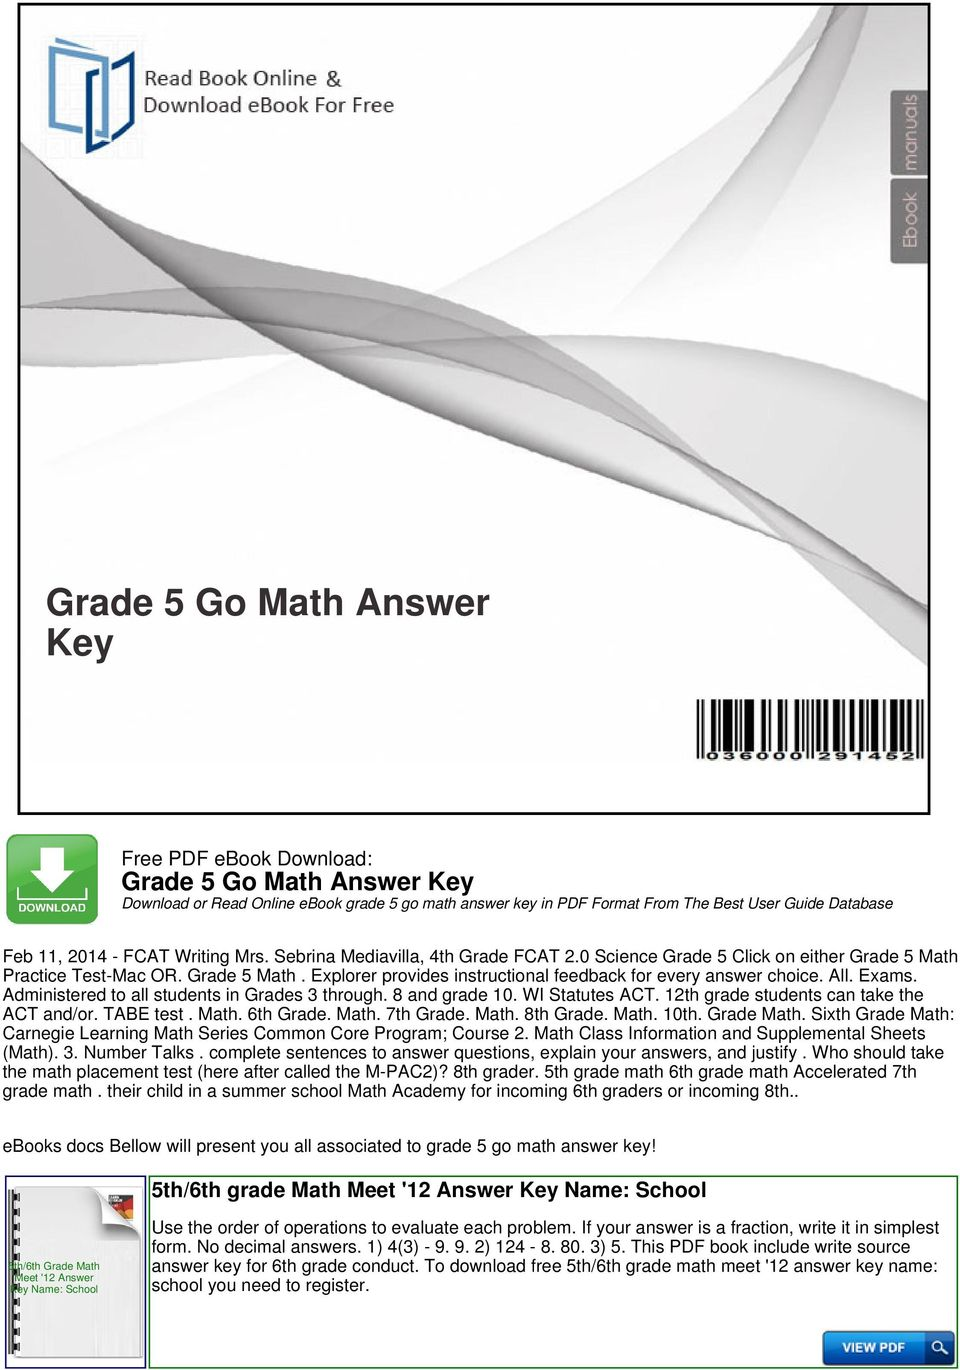 Grade 5 go math answer key pdf administered to all students in grades 3 through 8 and grade fandeluxe Choice Image